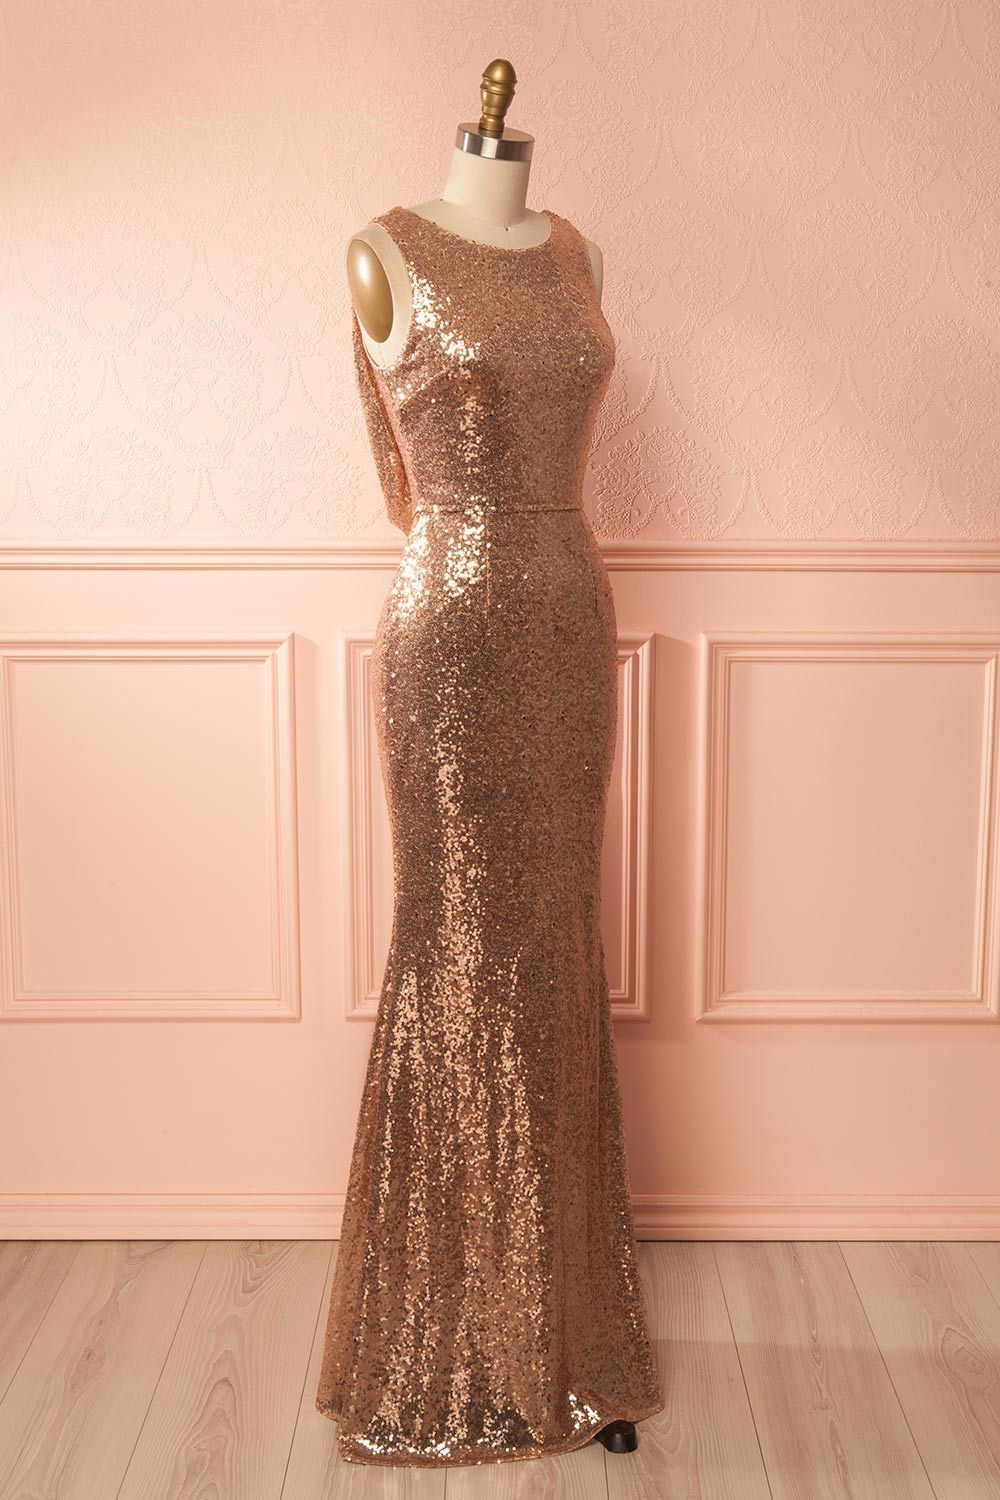 rose gold sequin sleeveless mermaid prom dressformal gown with